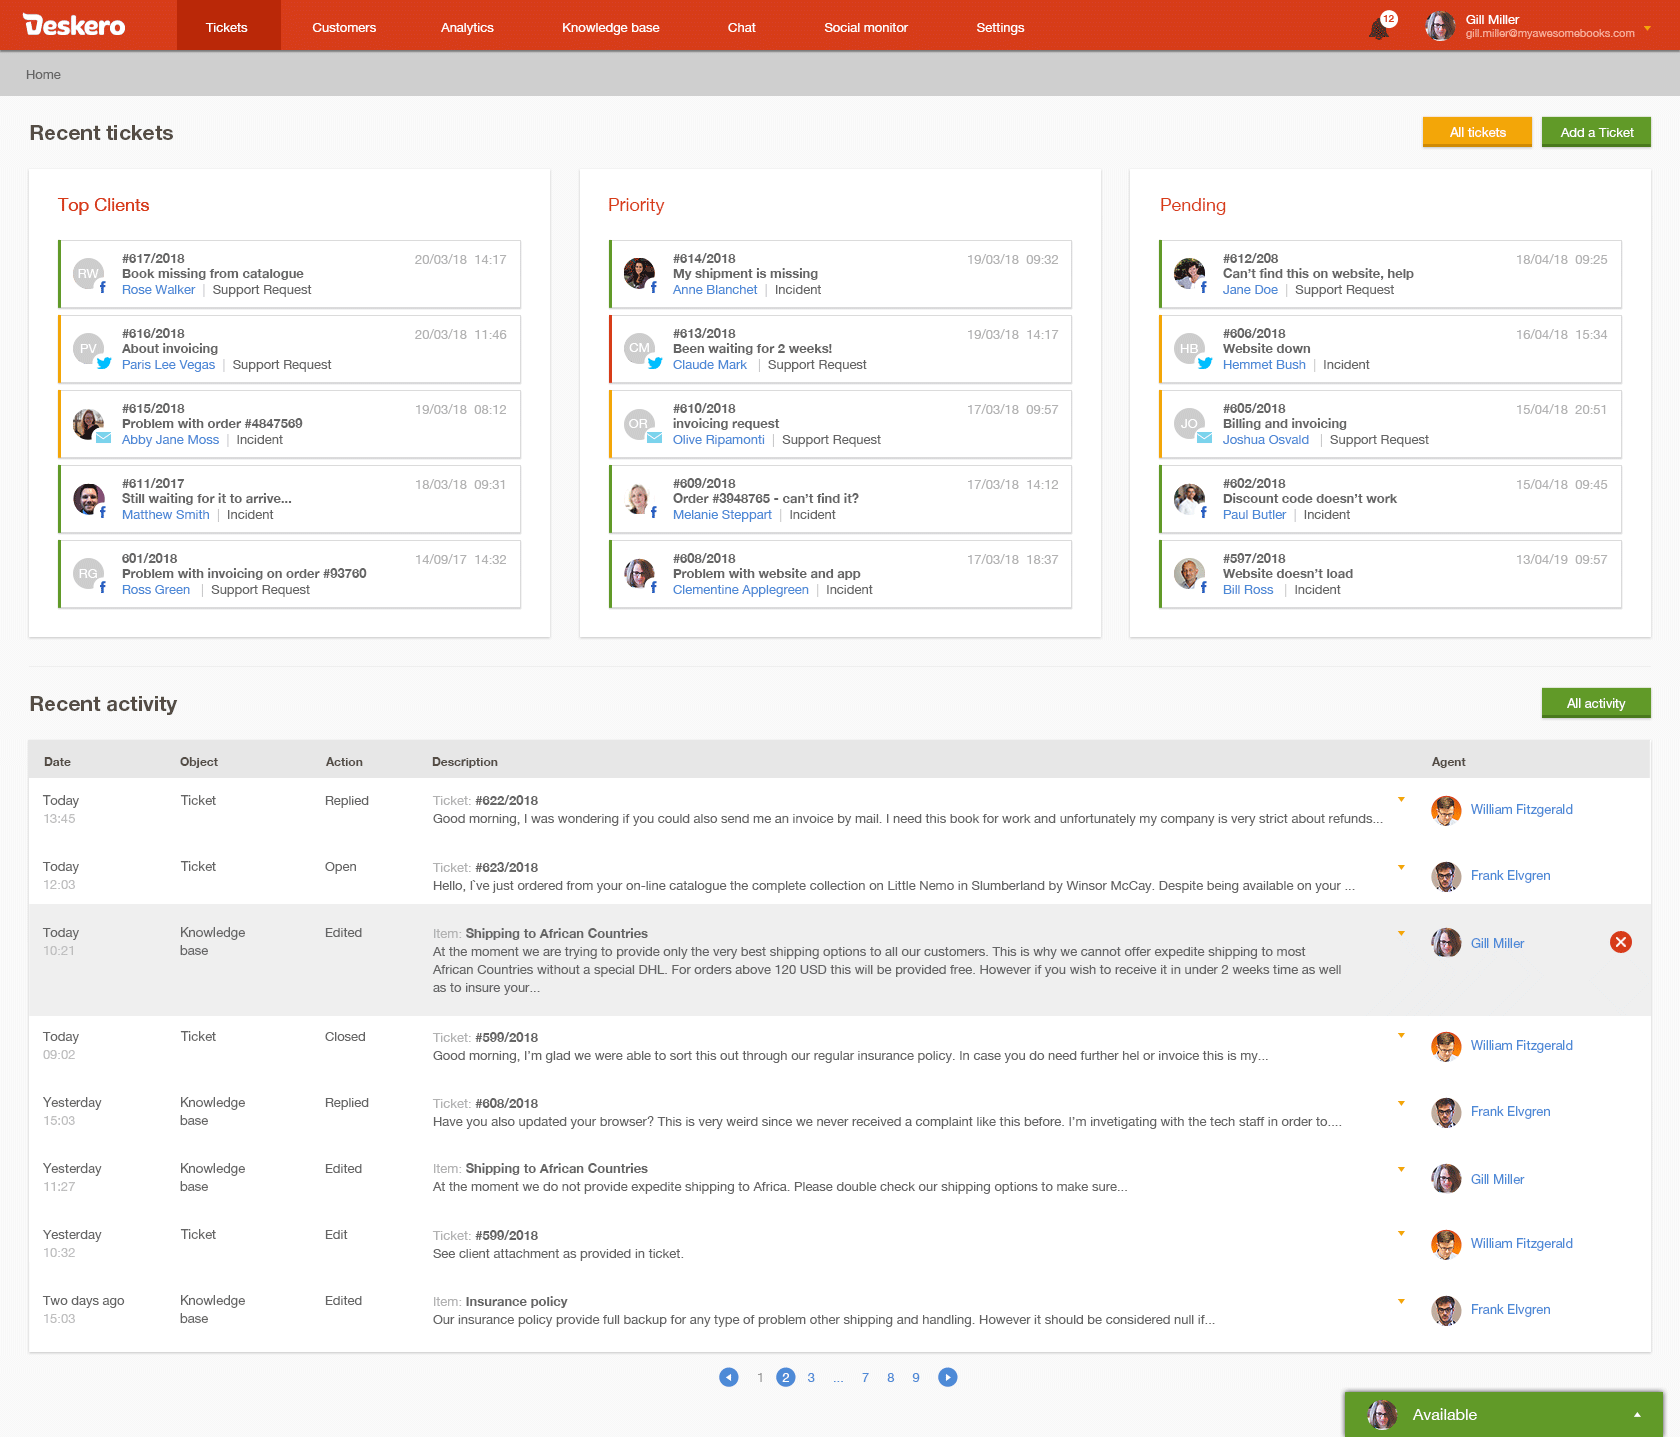 Dashboard view allows you to see at a glance tickets that need immediate attention